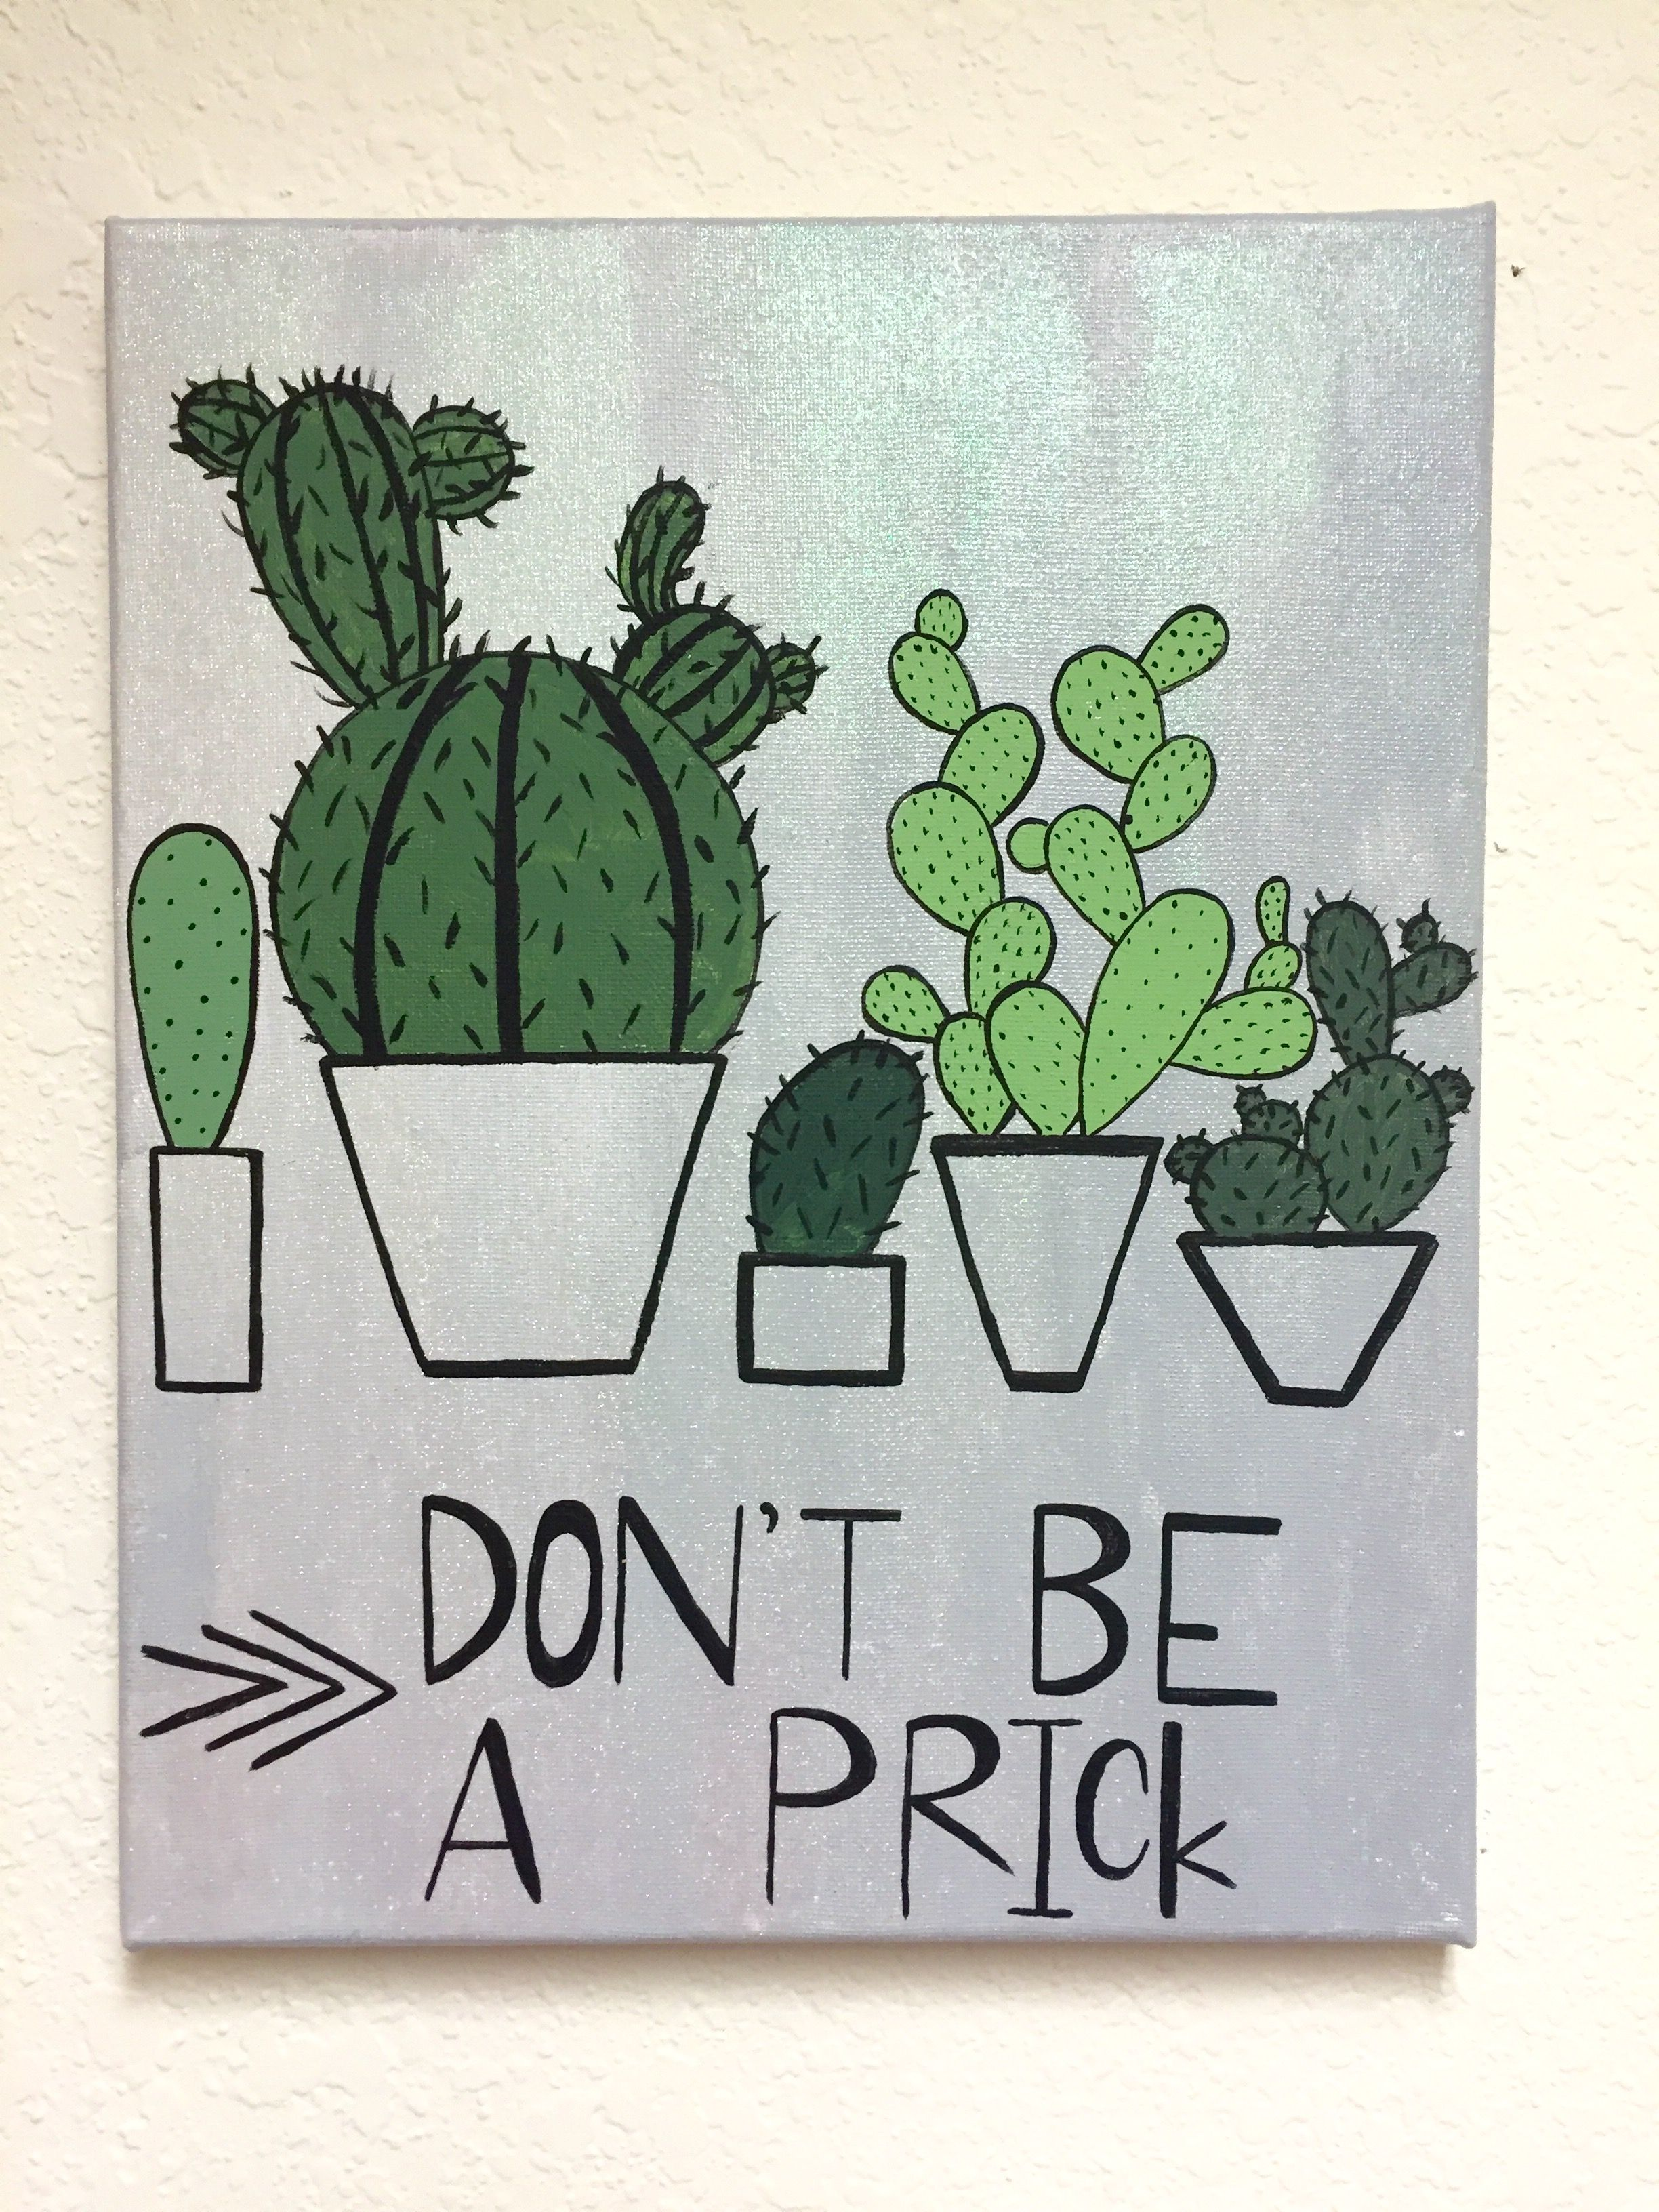 Cactus diy canvas … embroidery pinterest 선인장 색칠 공부